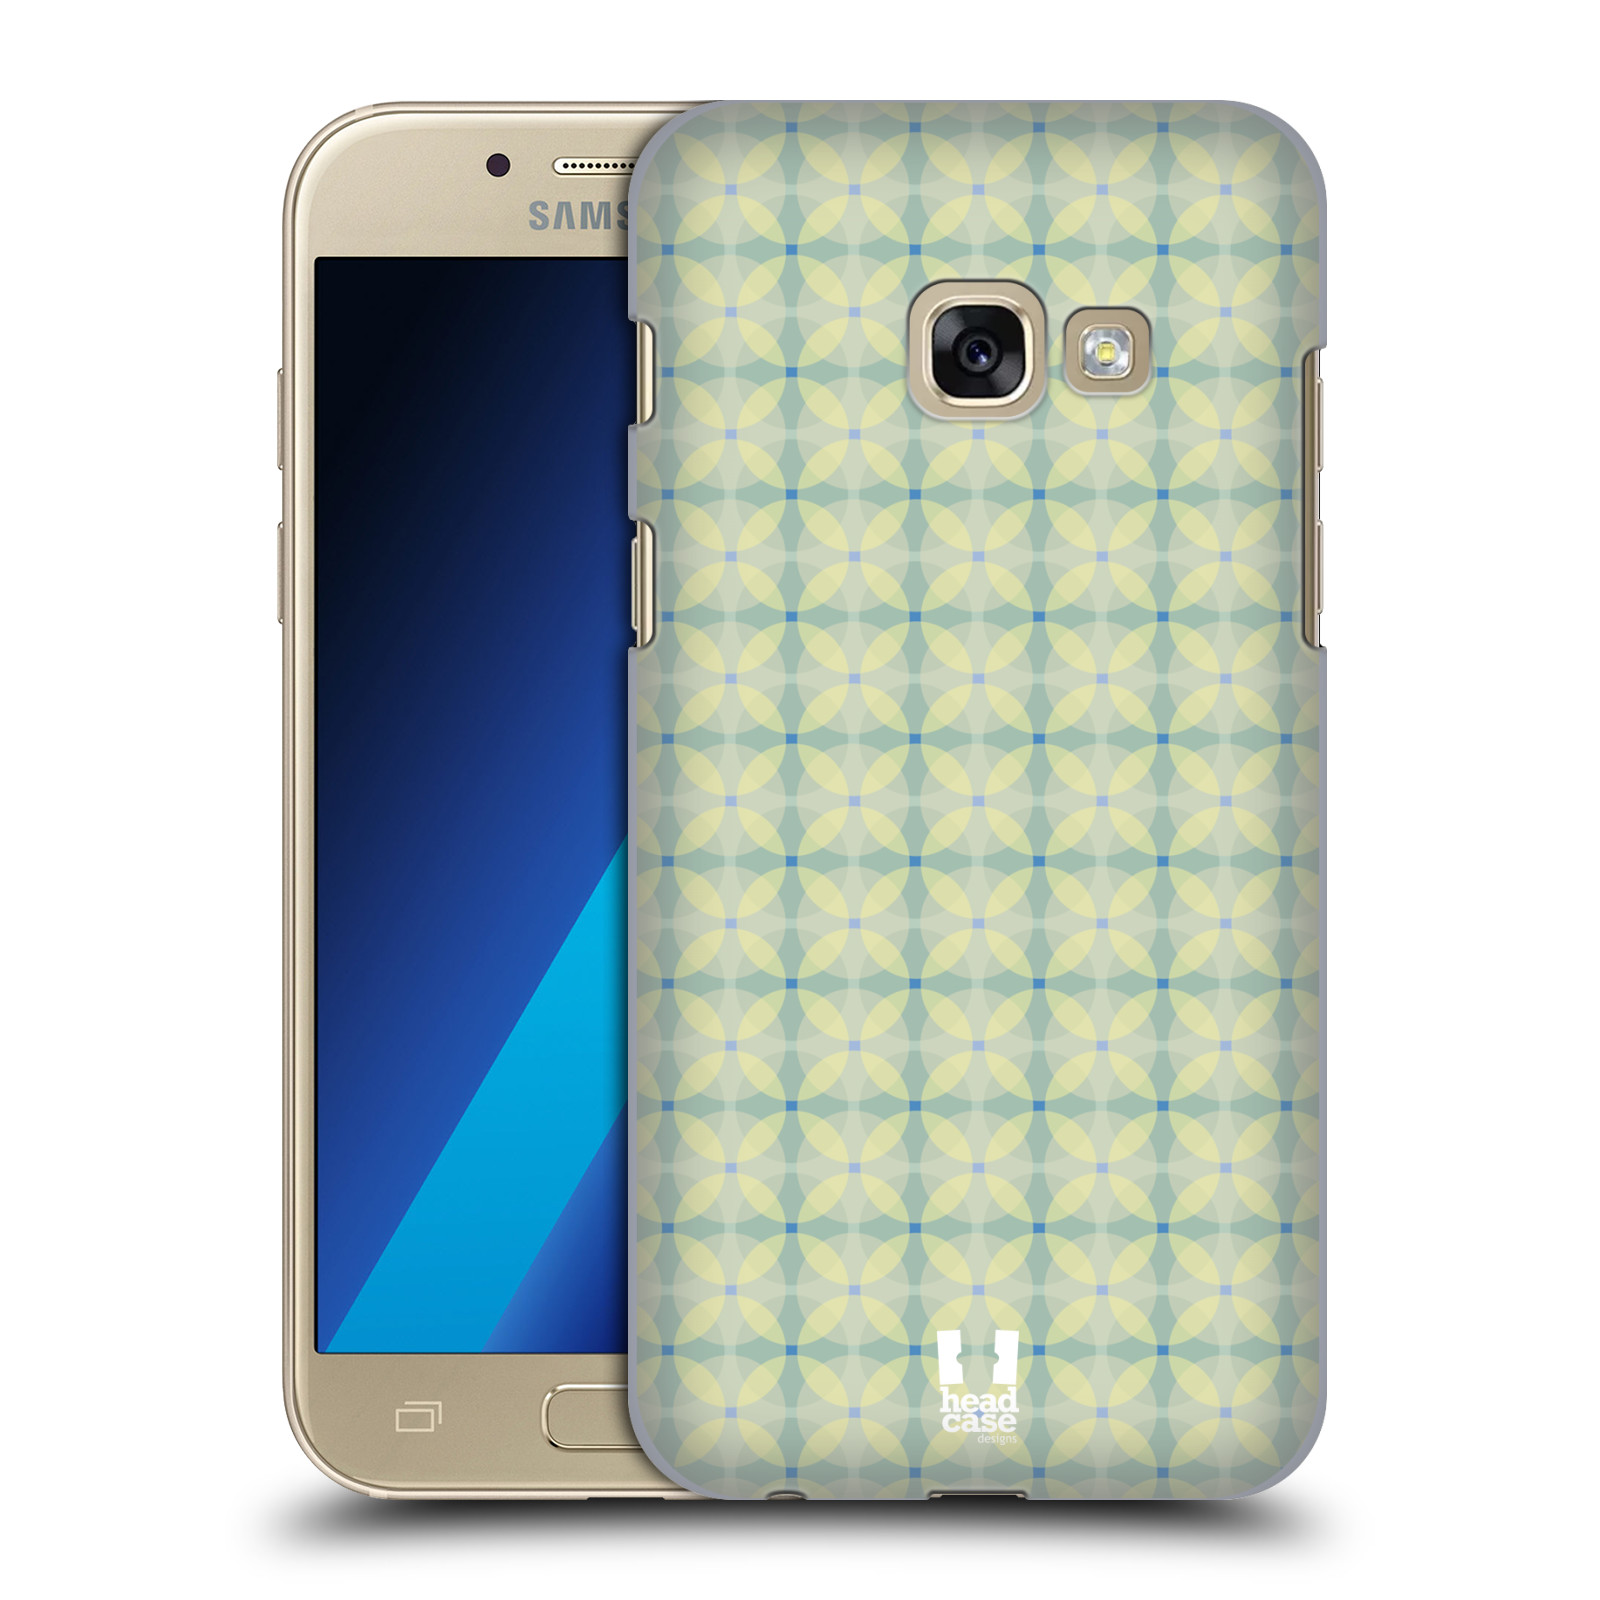 HEAD-CASE-DESIGNS-COMPLEX-CIRCLE-PATTERNS-BACK-CASE-FOR-SAMSUNG-GALAXY-A3-2017